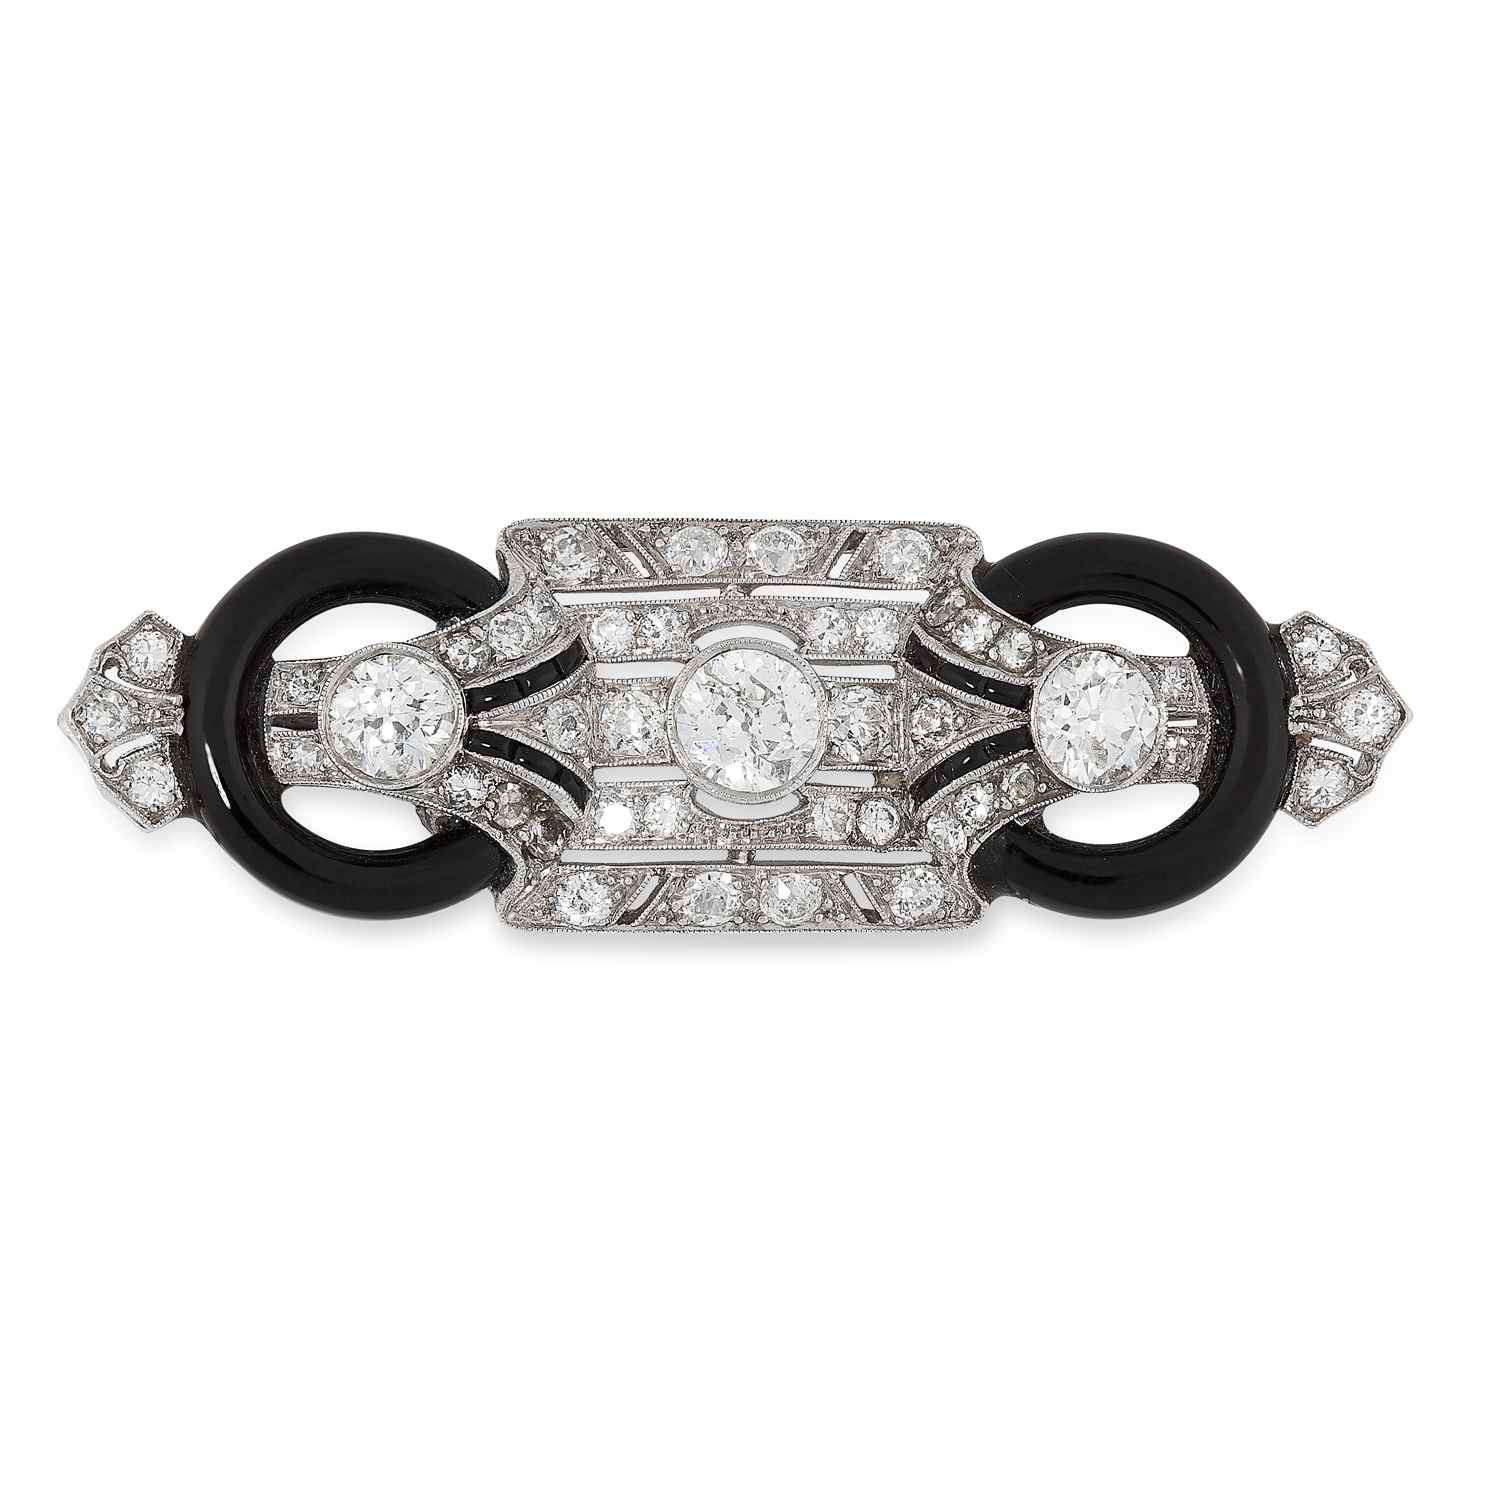 AN ART DECO ONYX AND DIAMOND BROOCH in 18ct white